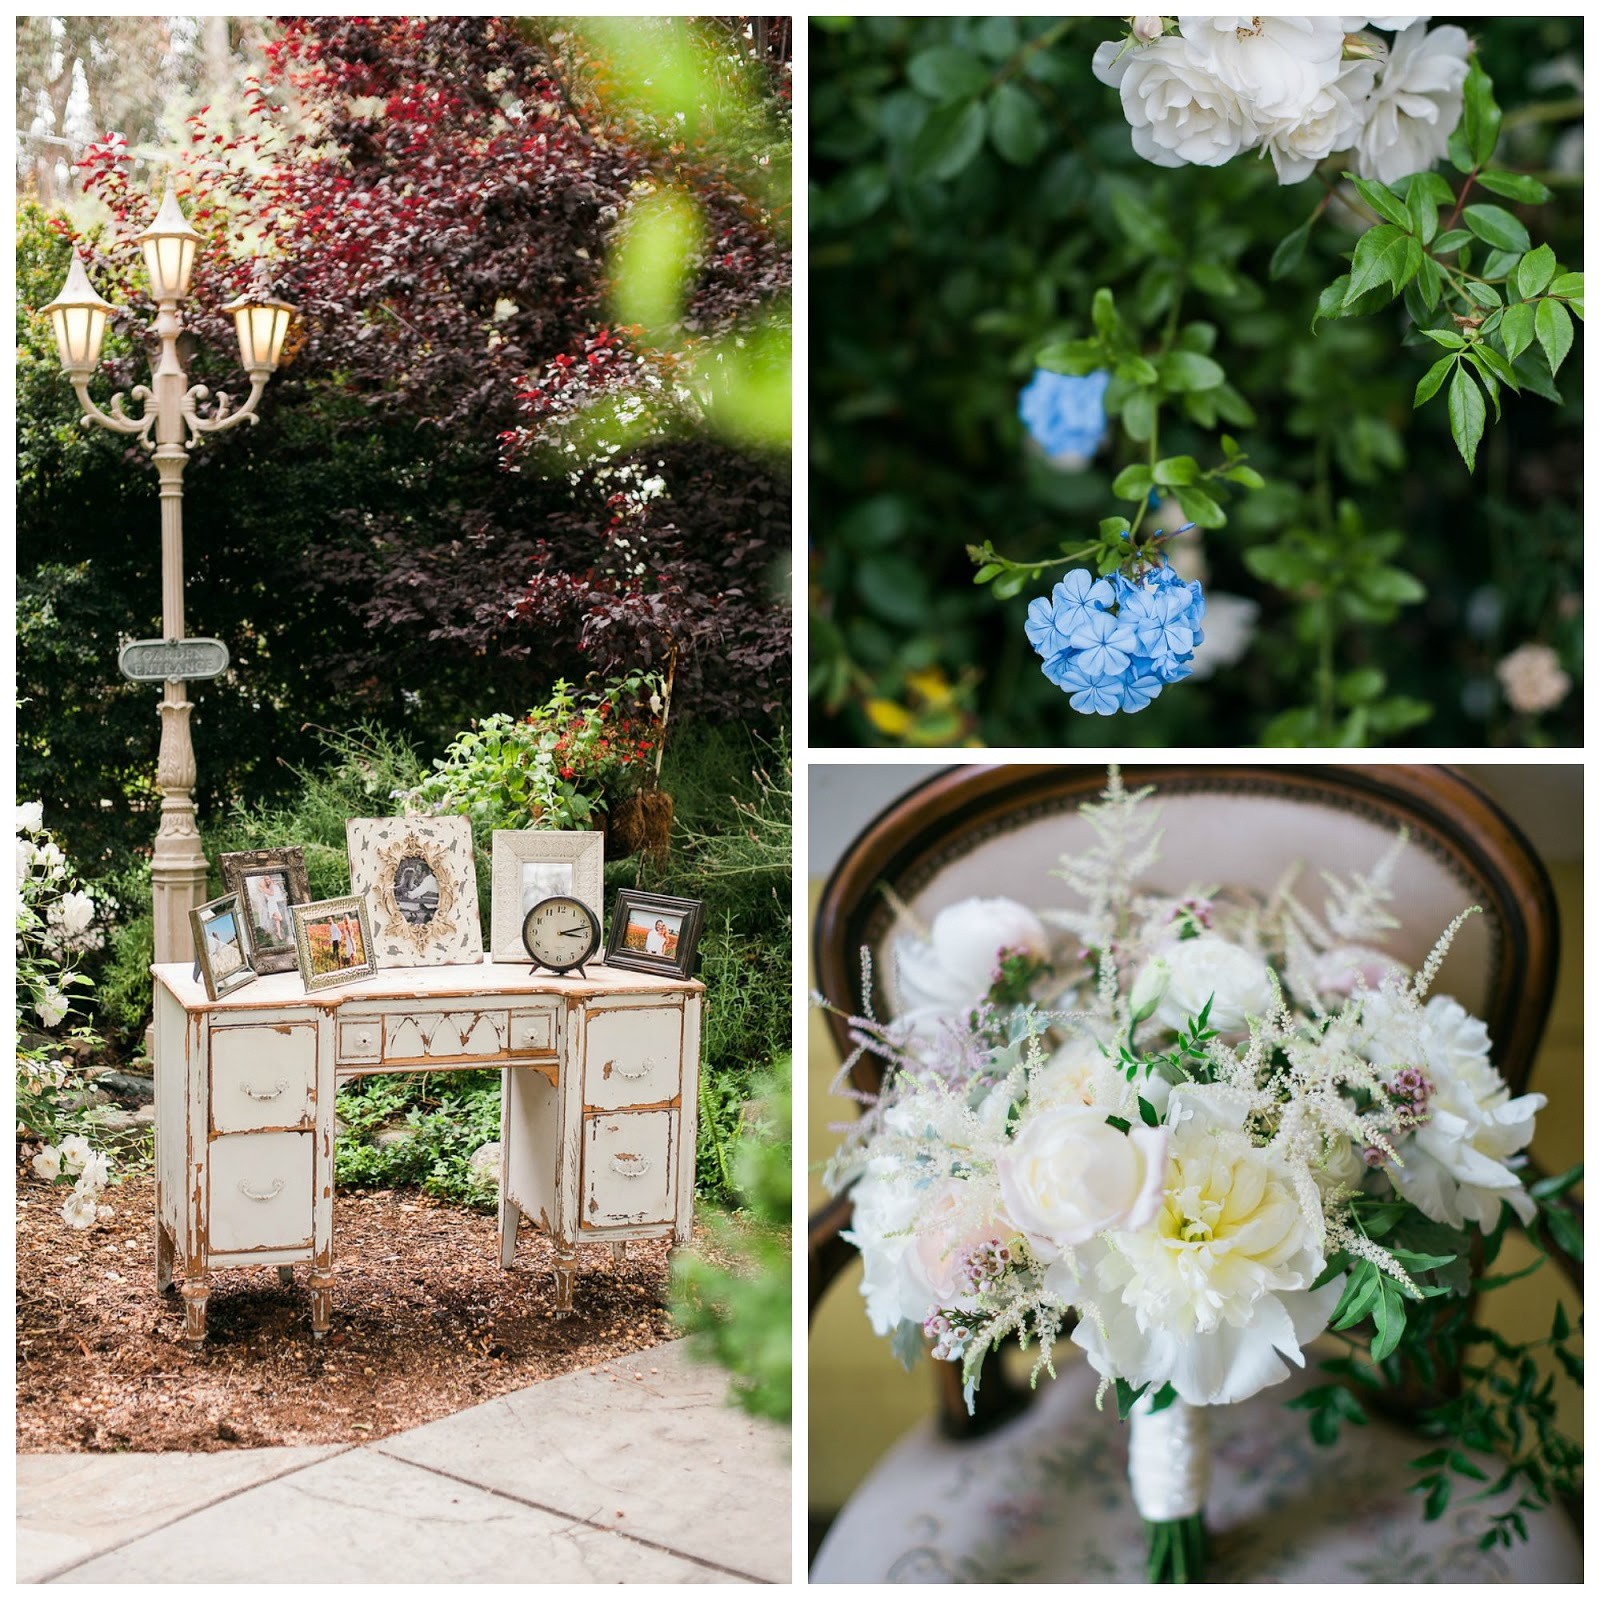 Floral Occasions by Janna Hatch: Twin Oaks House Wedding Flowers